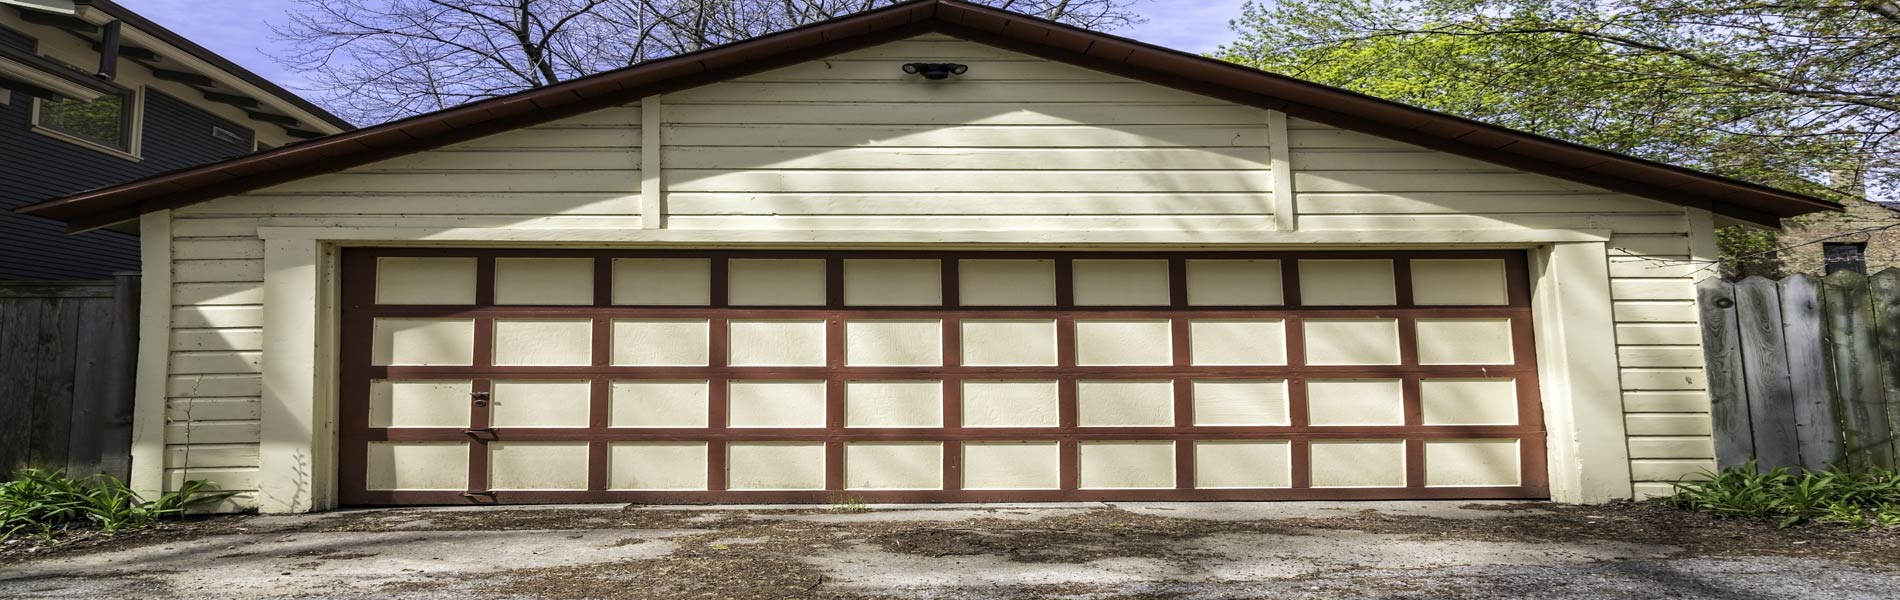 HighTech Garage Door Service, Cedar Knolls, NJ 908-382-1223